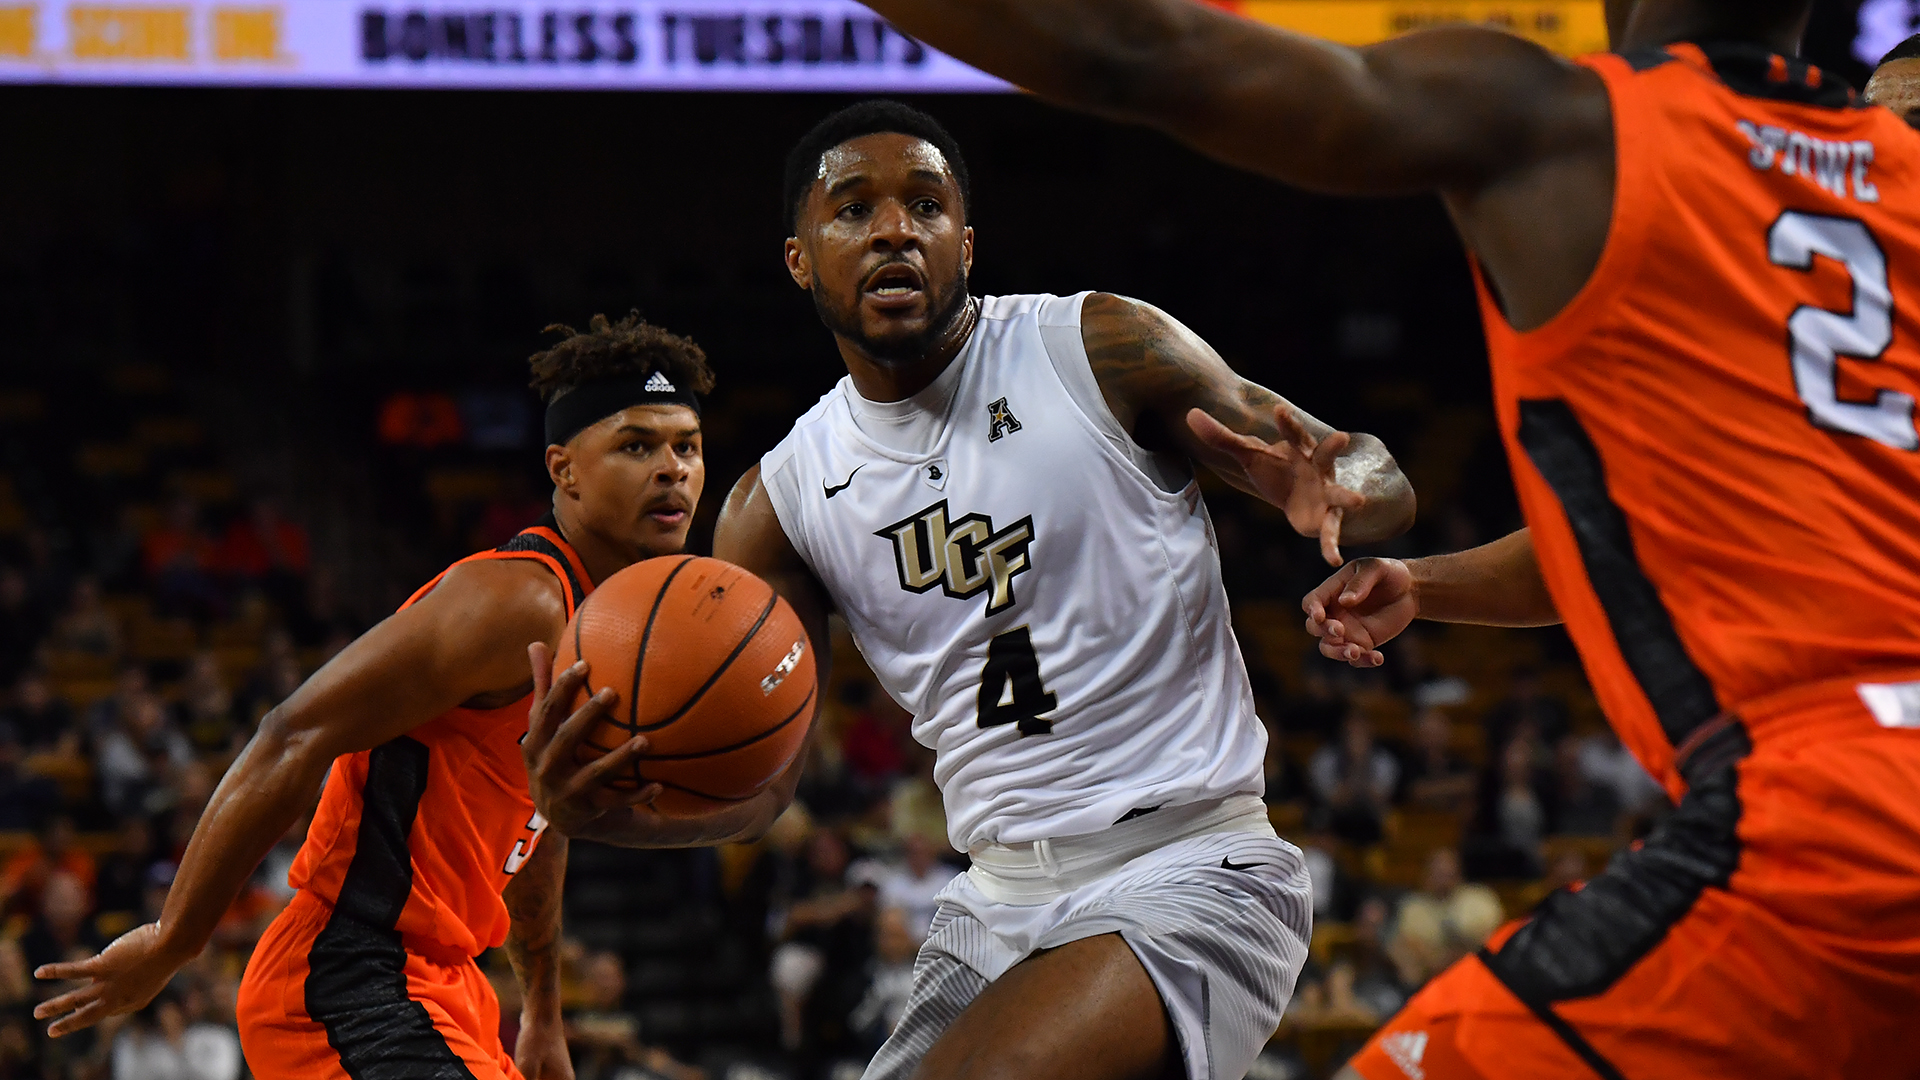 ORLANDO (FNN SPORTS) - Ceasar DeJesus (center) and the UCF men's basketball team return to action Wednesday to host Gardner-Webb at CFE Arena. Photo: UCFKnights.com.